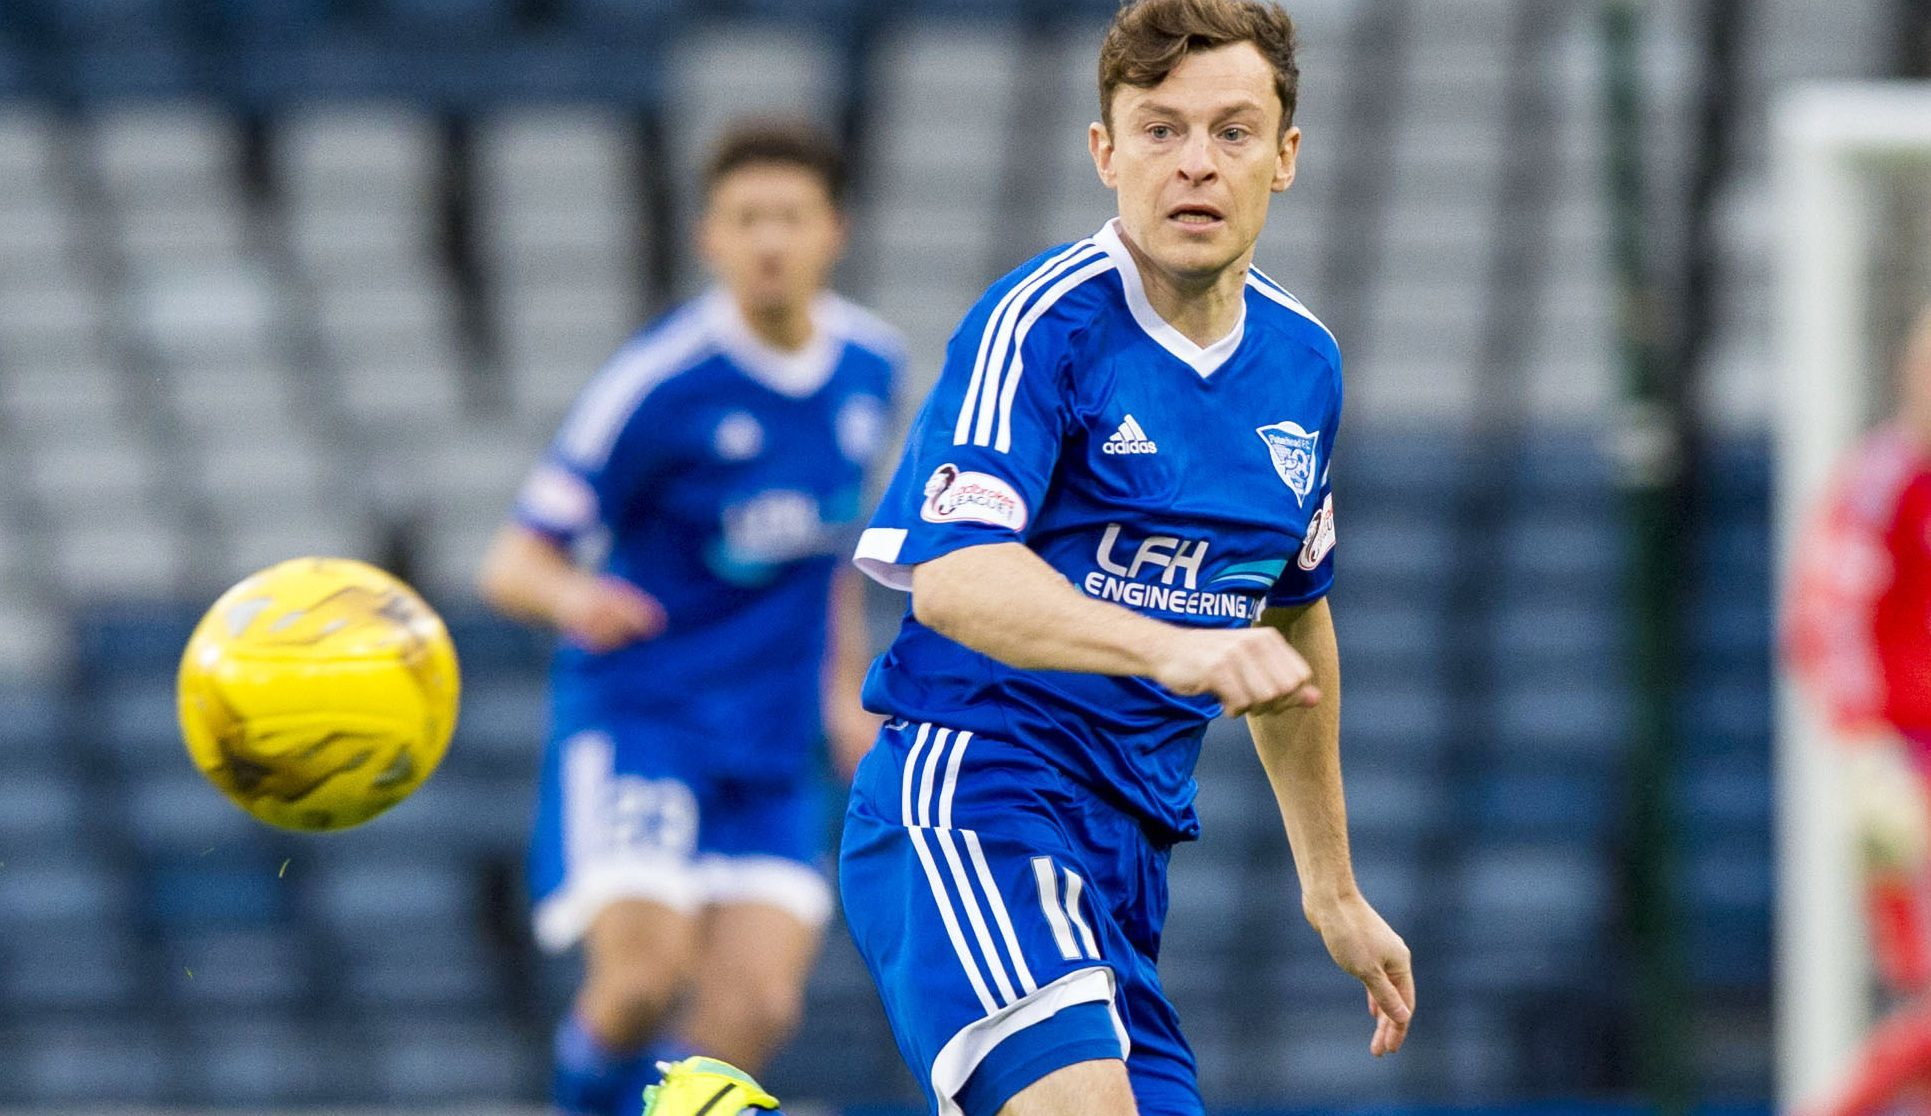 Nicky Riley is backing the Peterhead players to stick together and turn their fortunes around.